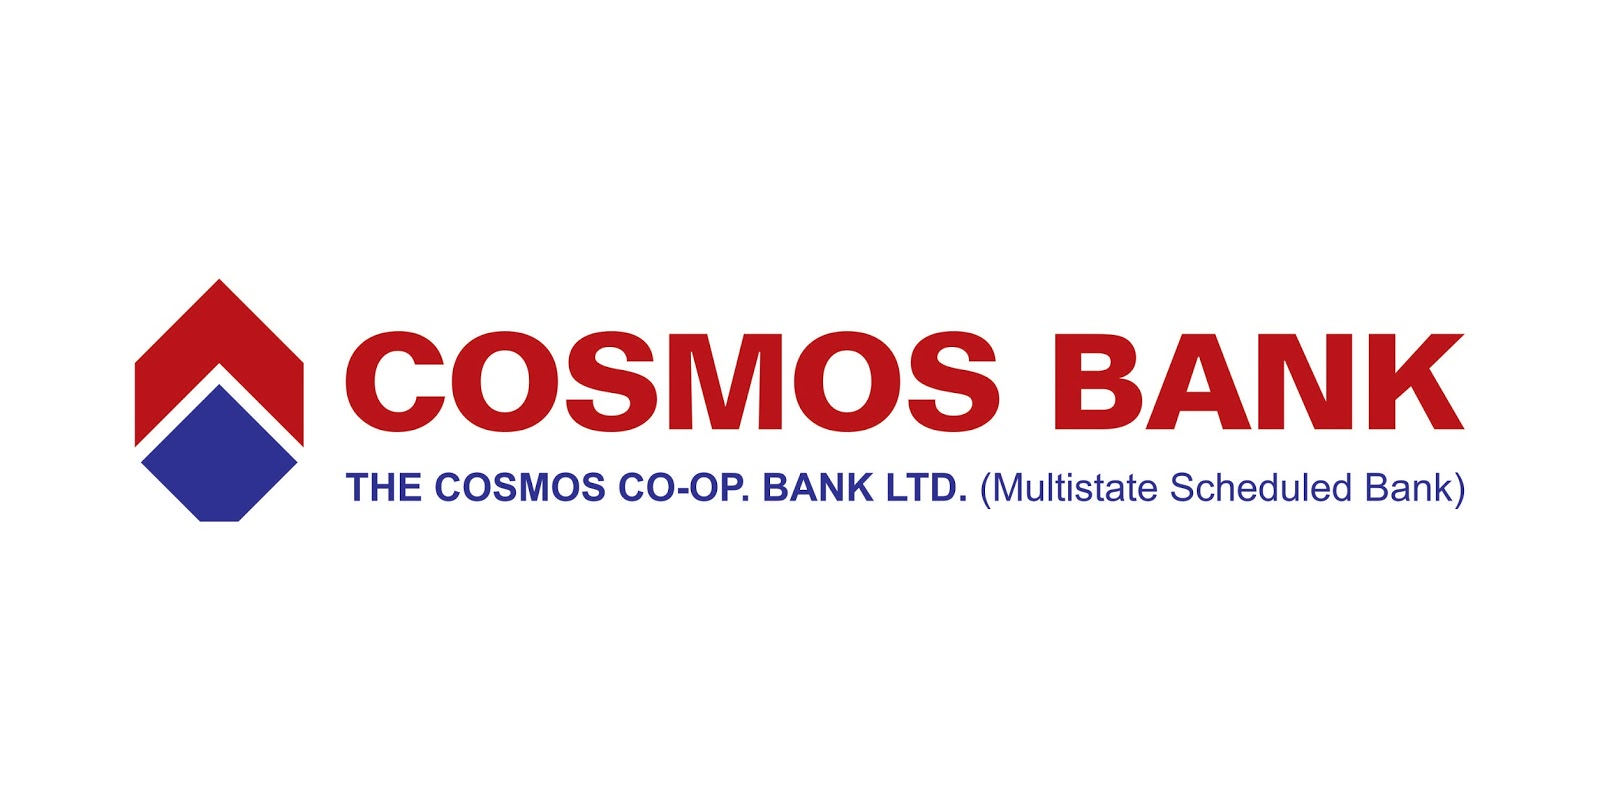 The Cosmos Cooperative Bank Ltd